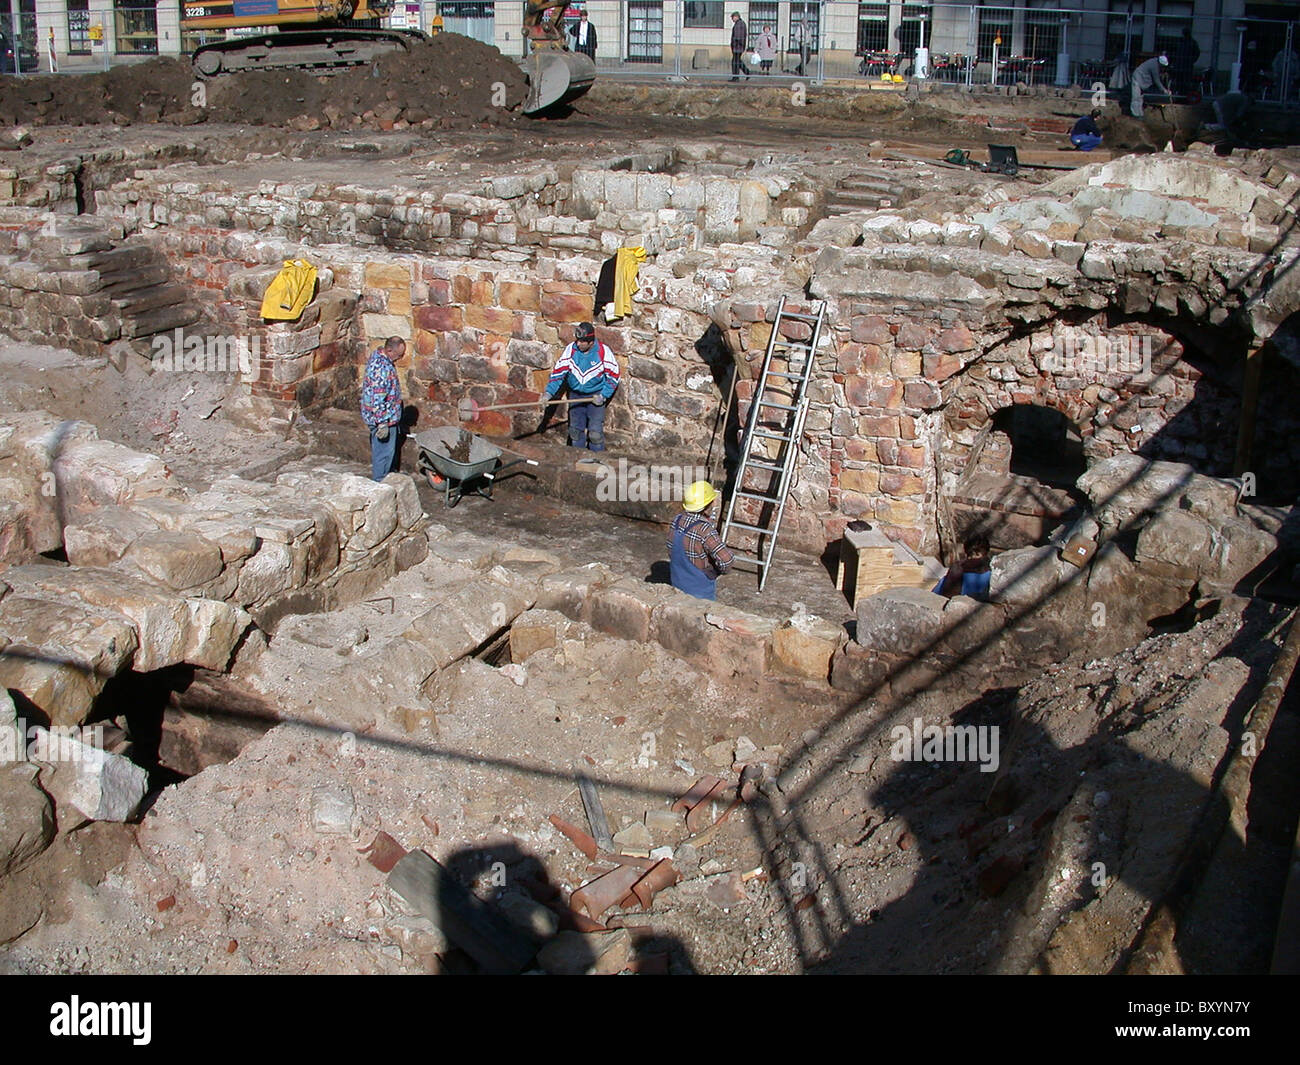 Excavating a former bomb site in Dresden Germany 2002 - Stock Image